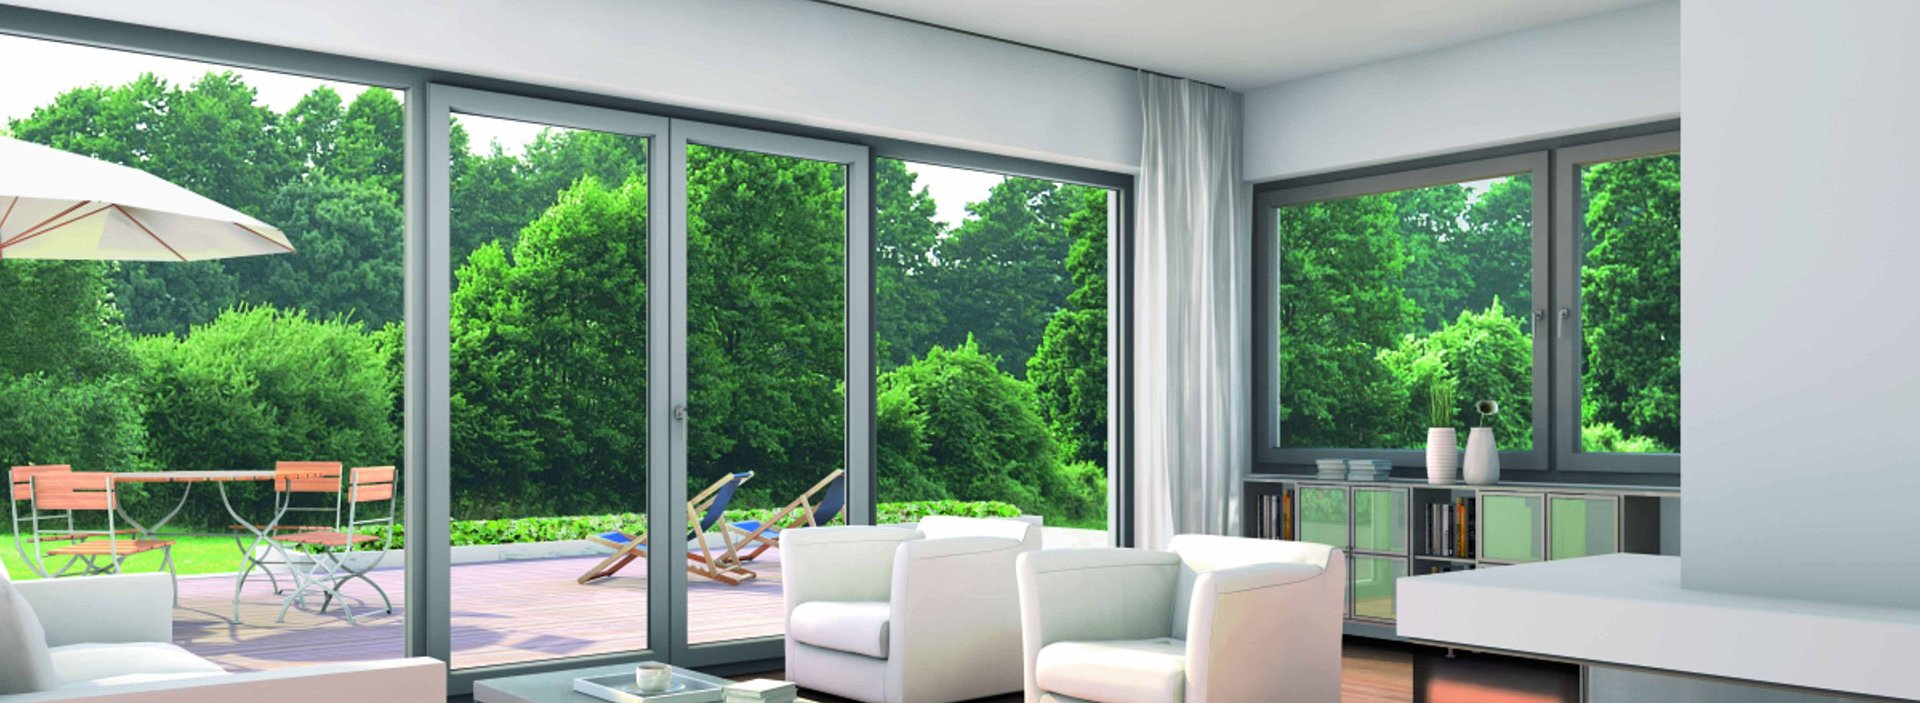 PVC and Aluminum Windows & Doors